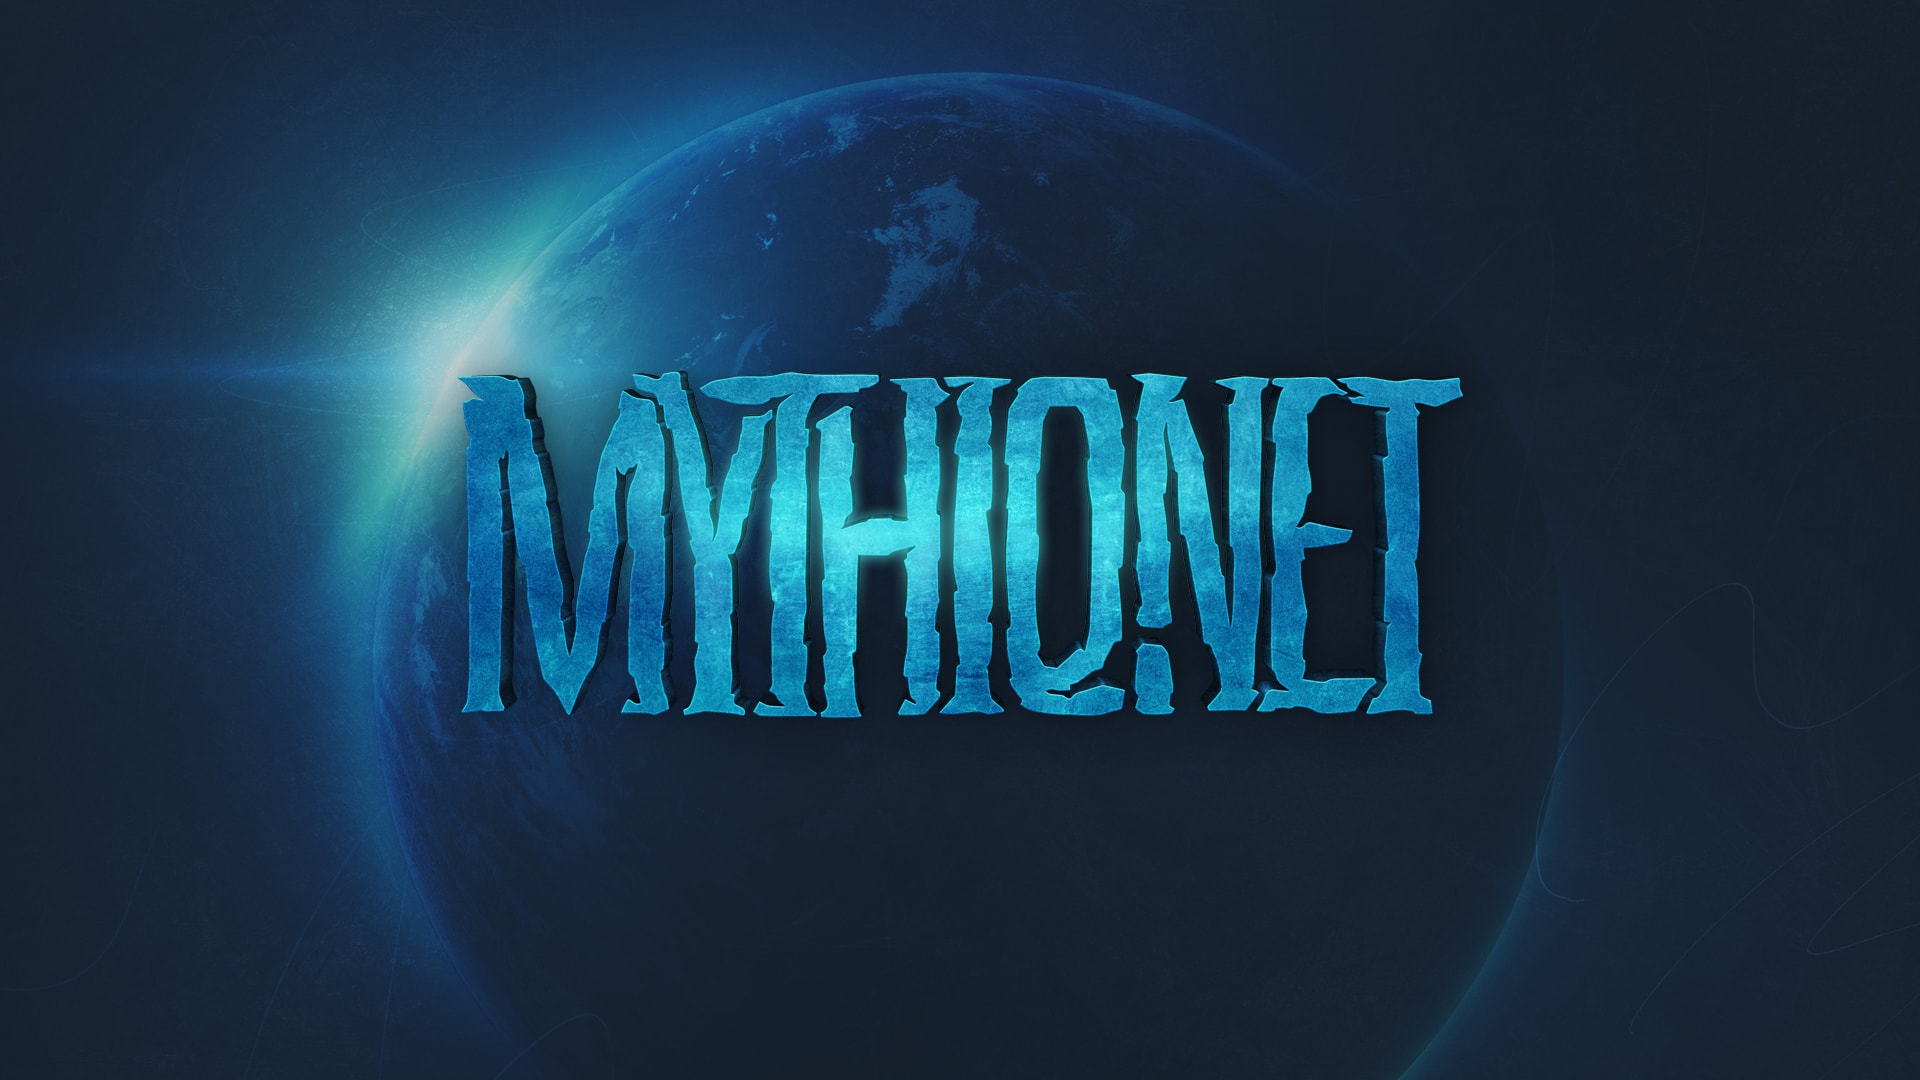 Introducing the New Mythiq.net Accounts